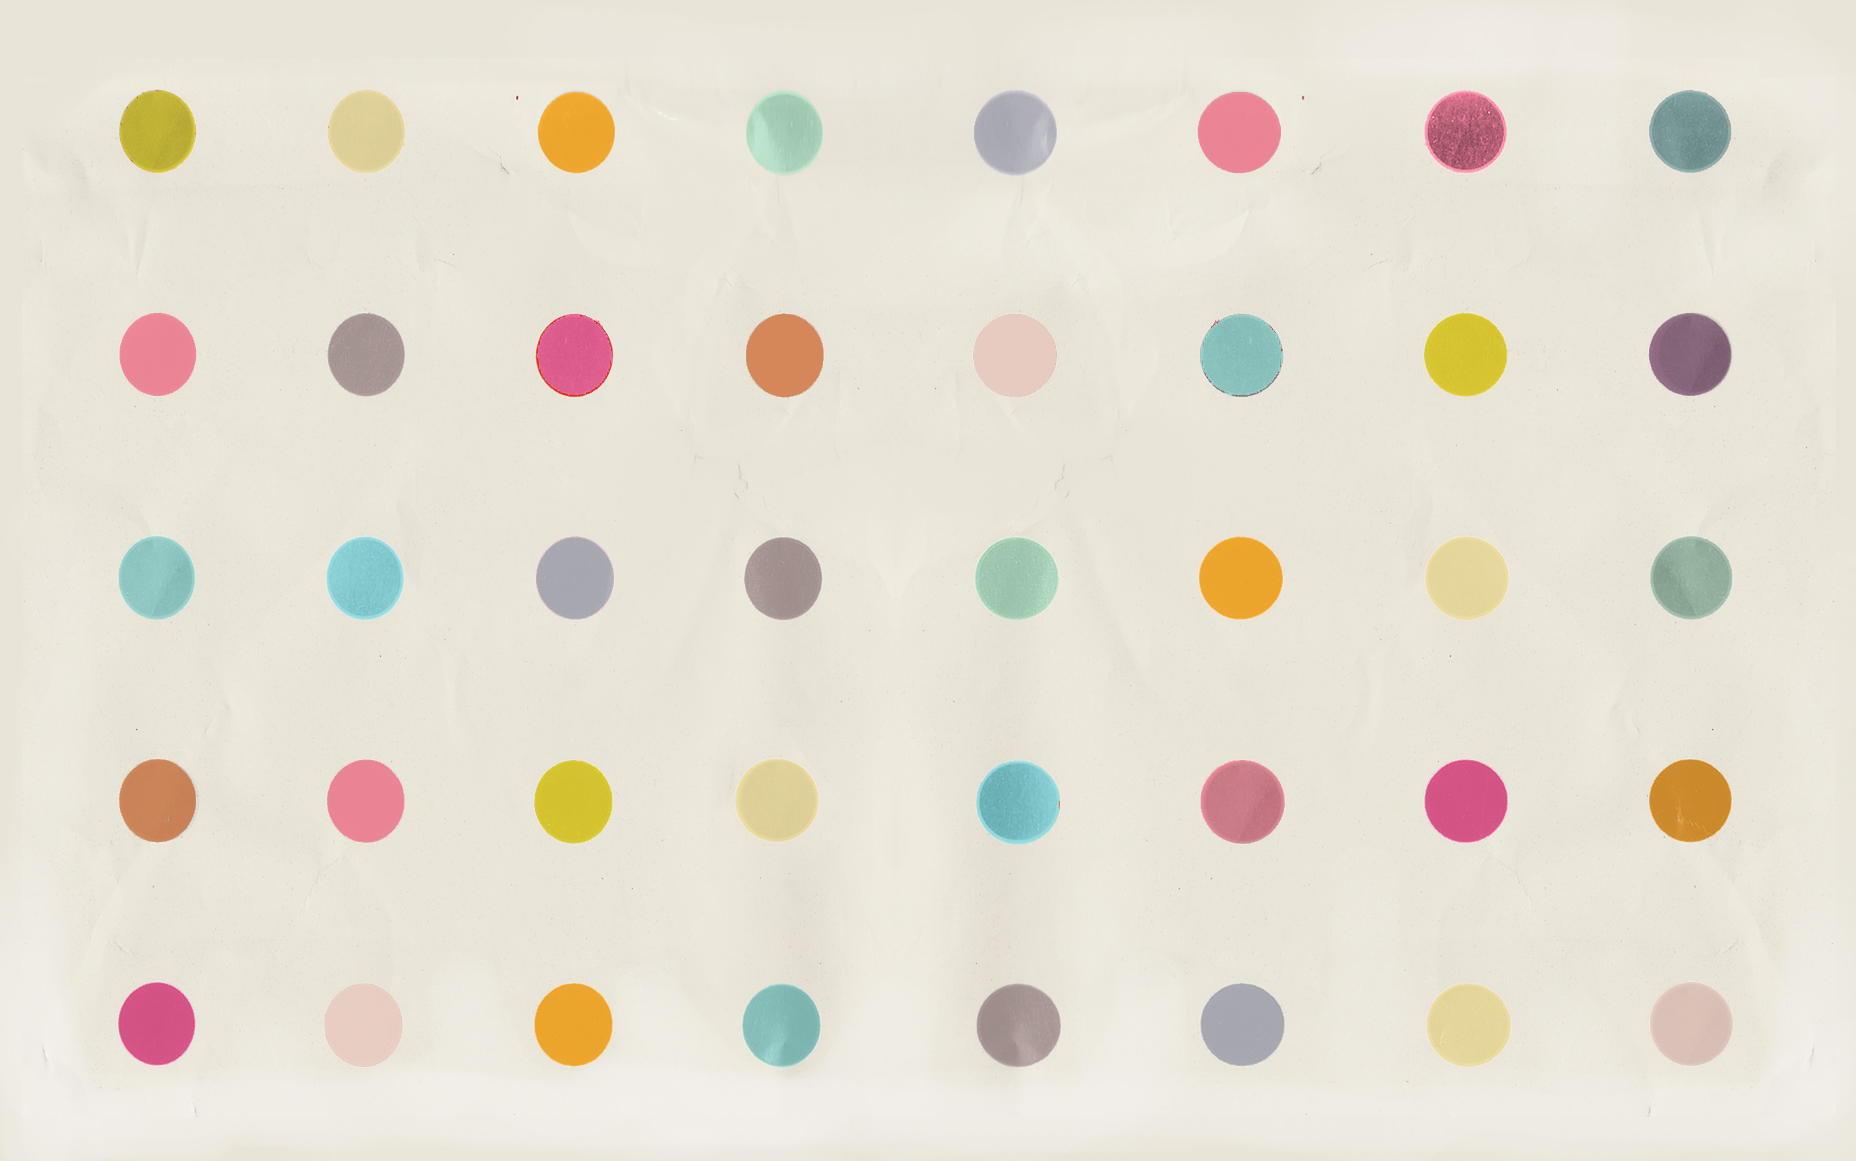 polka dots wallpaper - photo #20